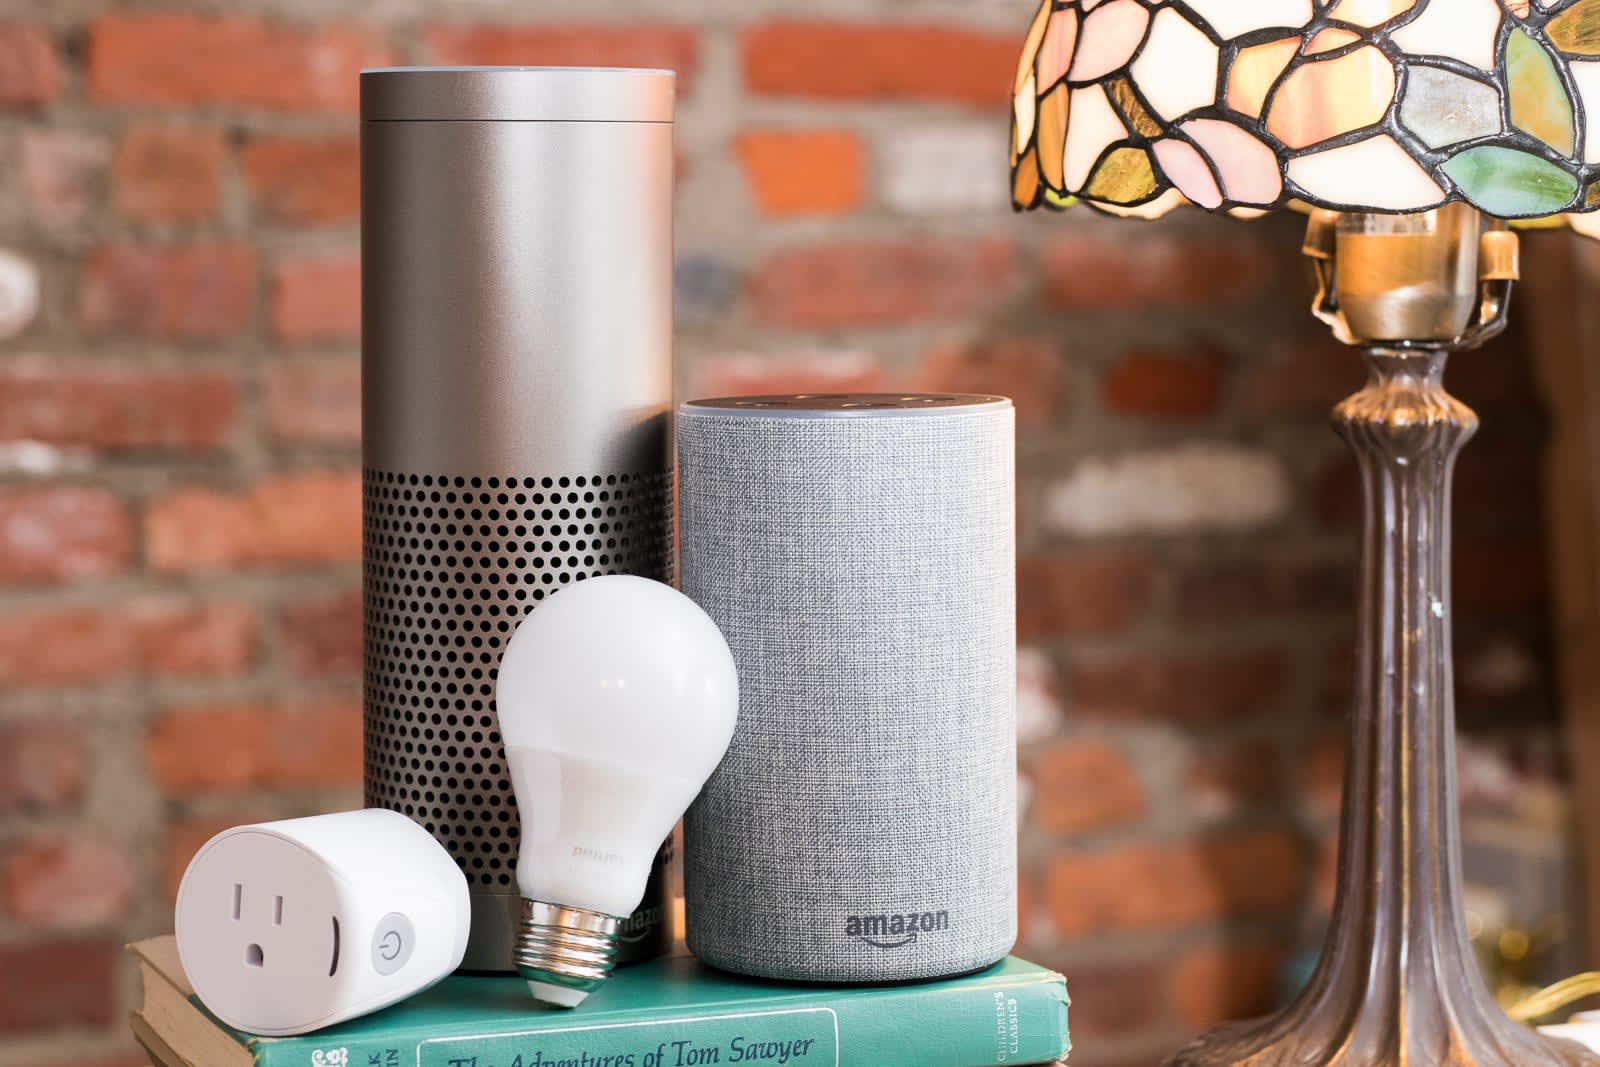 Best Smart Home Hub 2020.The Best Alexa Compatible Smart Home Devices For Amazon Echo